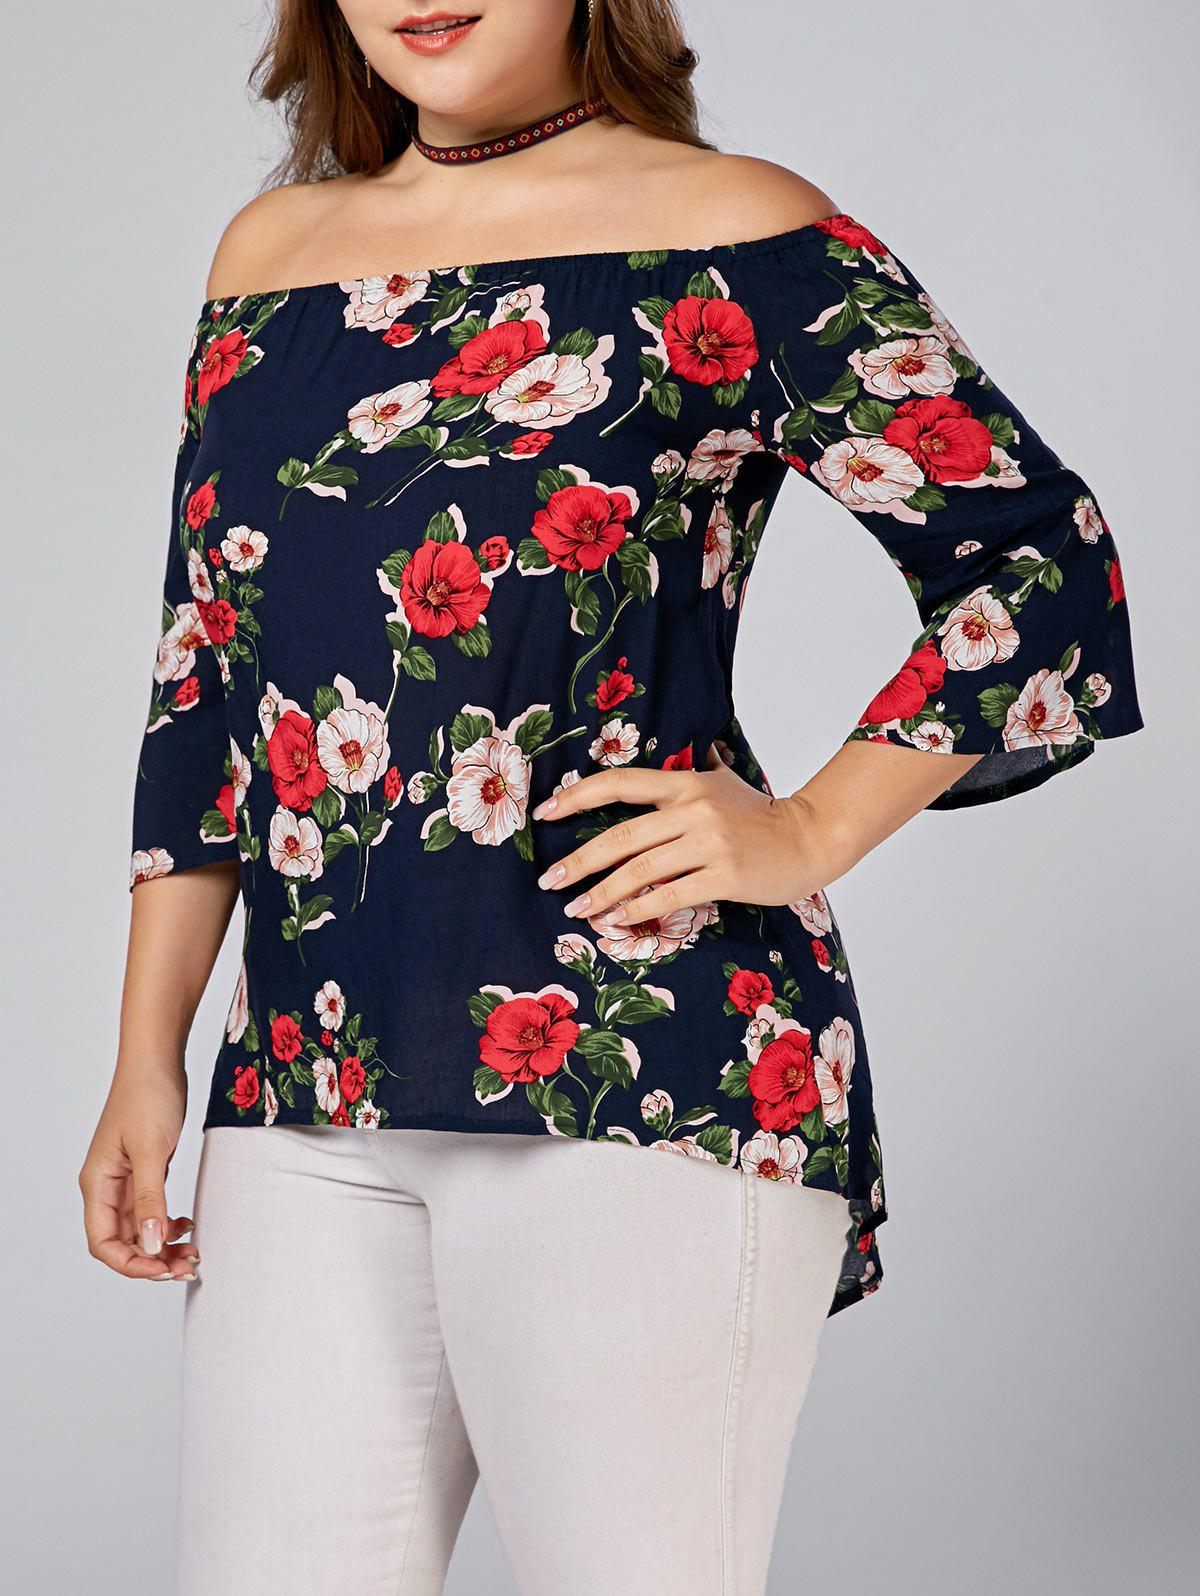 Plus Size Floral Printed Off Shoulder TopWOMEN<br><br>Size: 4XL; Color: DEEP BLUE; Material: Cotton Blends,Polyester; Shirt Length: Long; Sleeve Length: Three Quarter; Collar: Off The Shoulder; Style: Fashion; Season: Spring,Summer; Sleeve Type: Flare Sleeve; Pattern Type: Floral; Weight: 0.1800kg; Package Contents: 1 x Top;